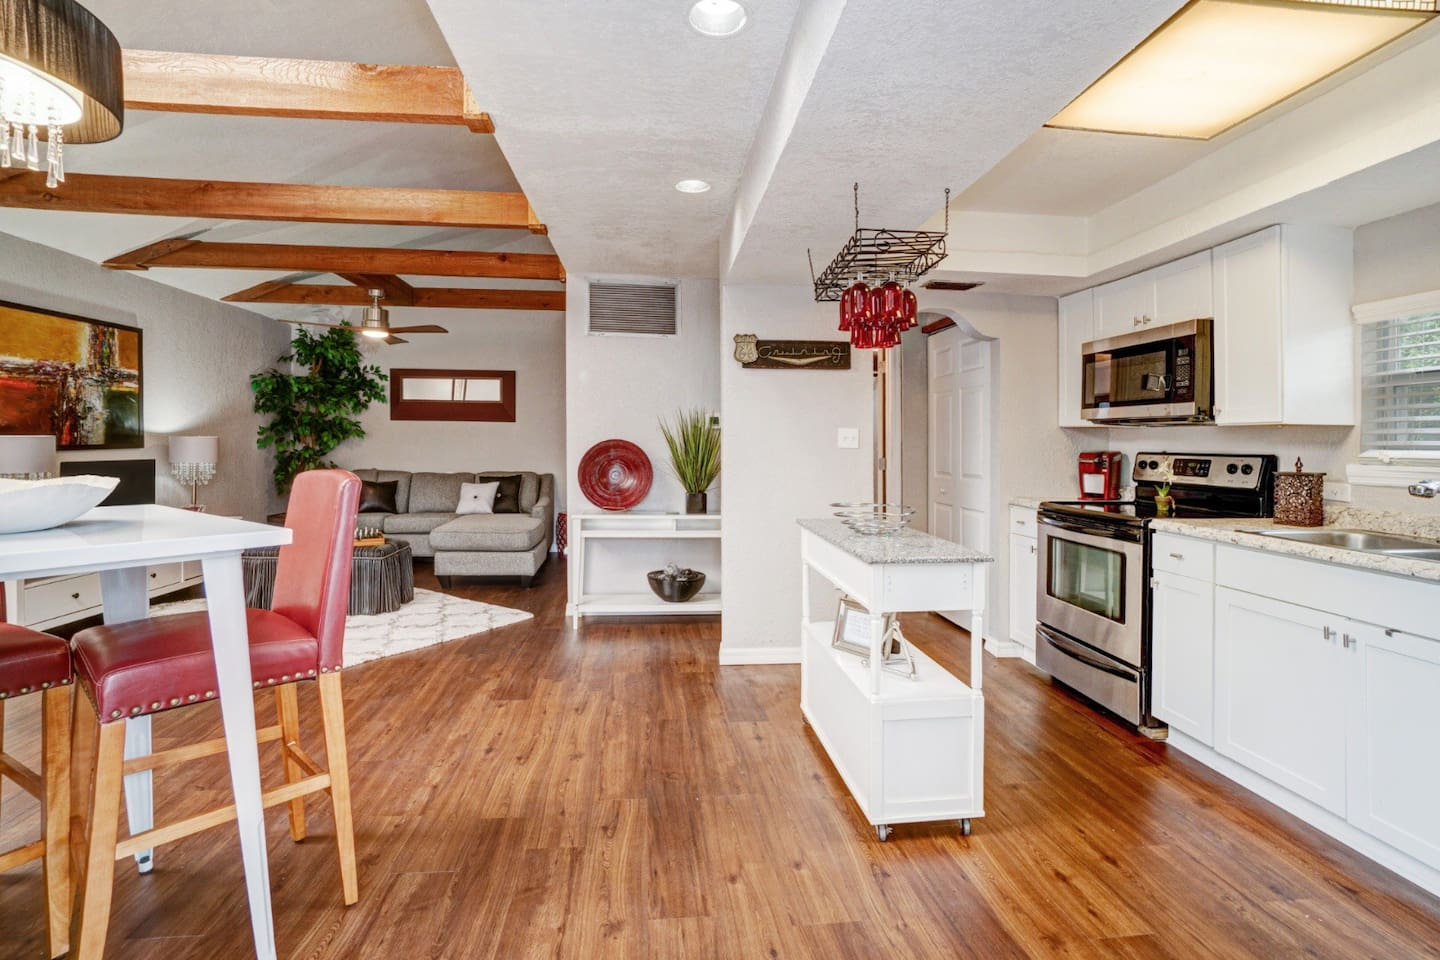 Contemporary decorated open loft with stainless steel appliances, Shaker cabinets, and full kitchen.